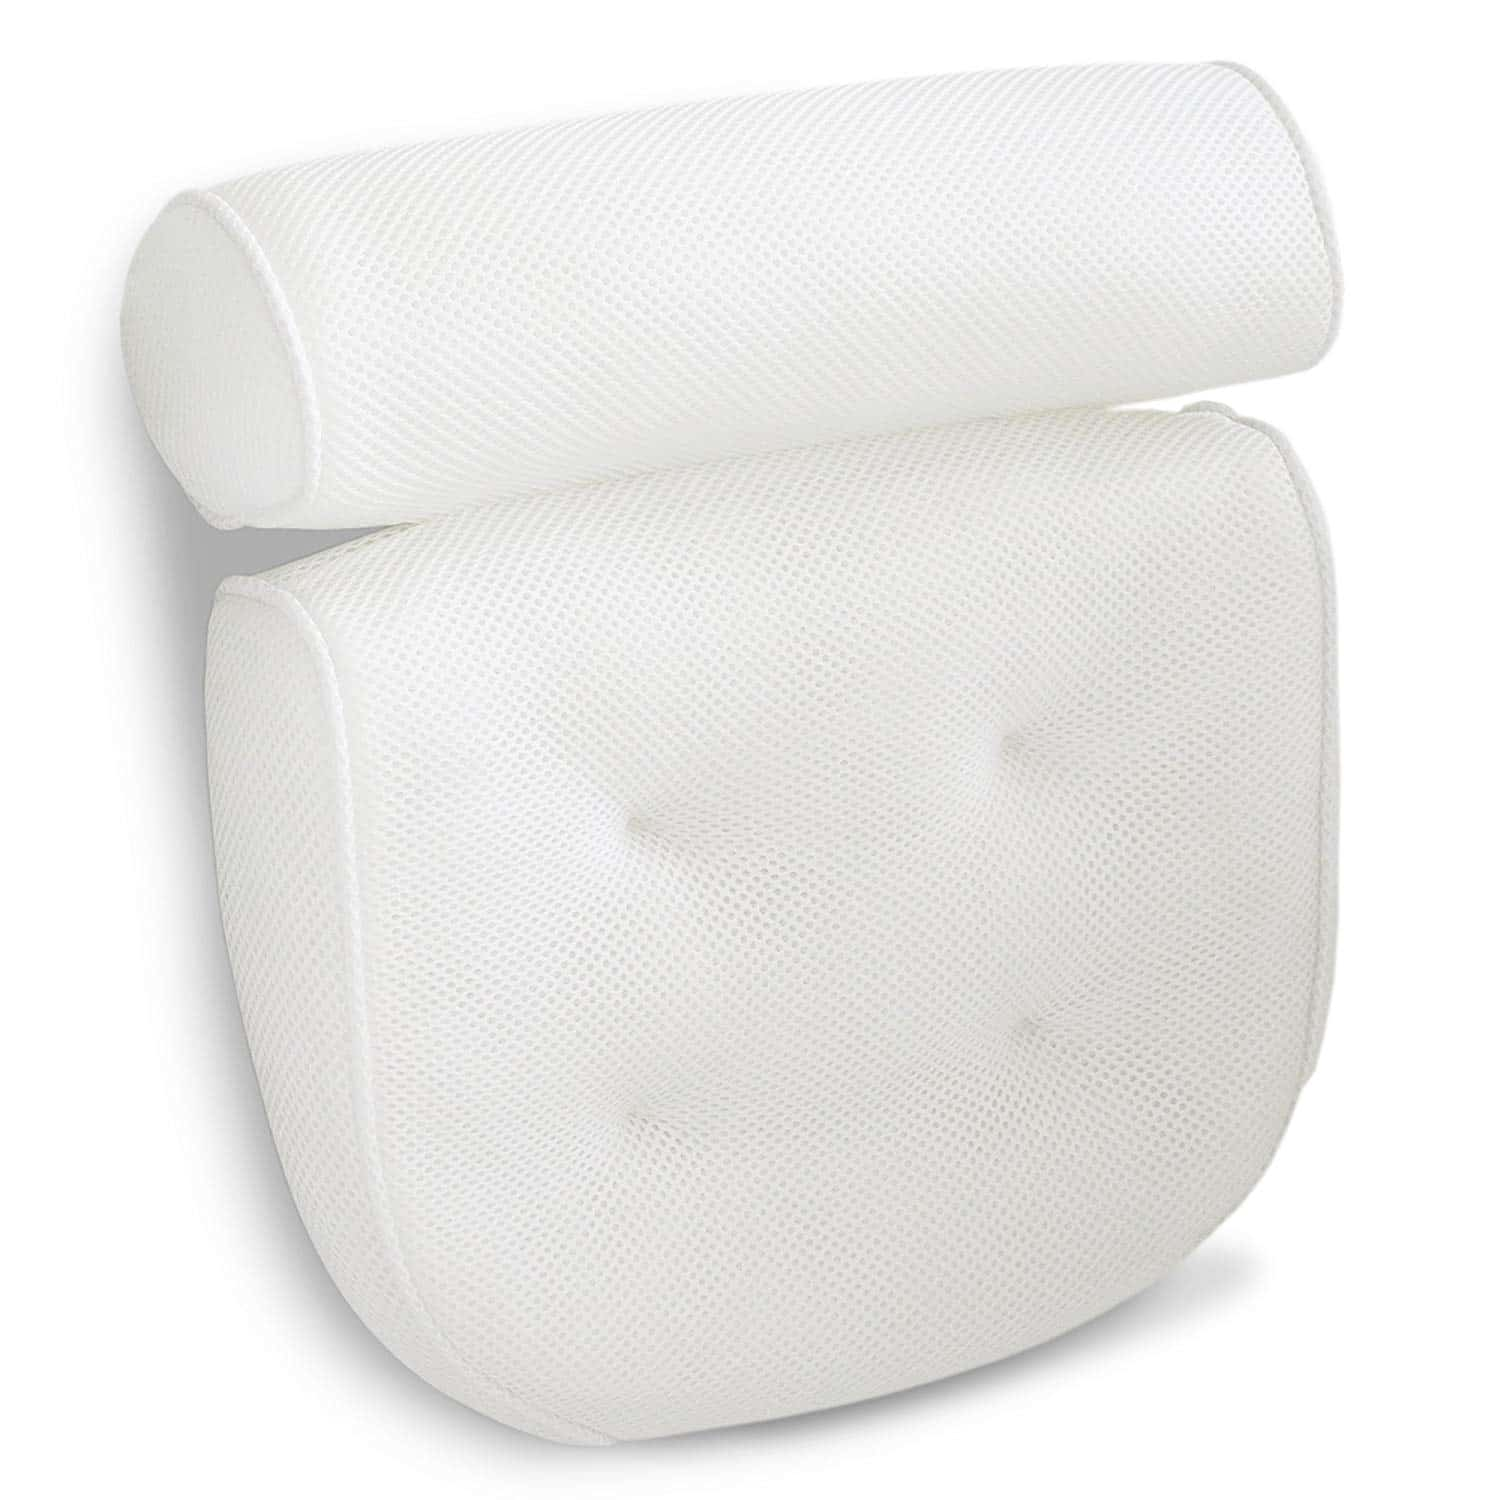 Viventive Luxury Spa Bath Pillow with Head, Neck, Shoulder and Back ...